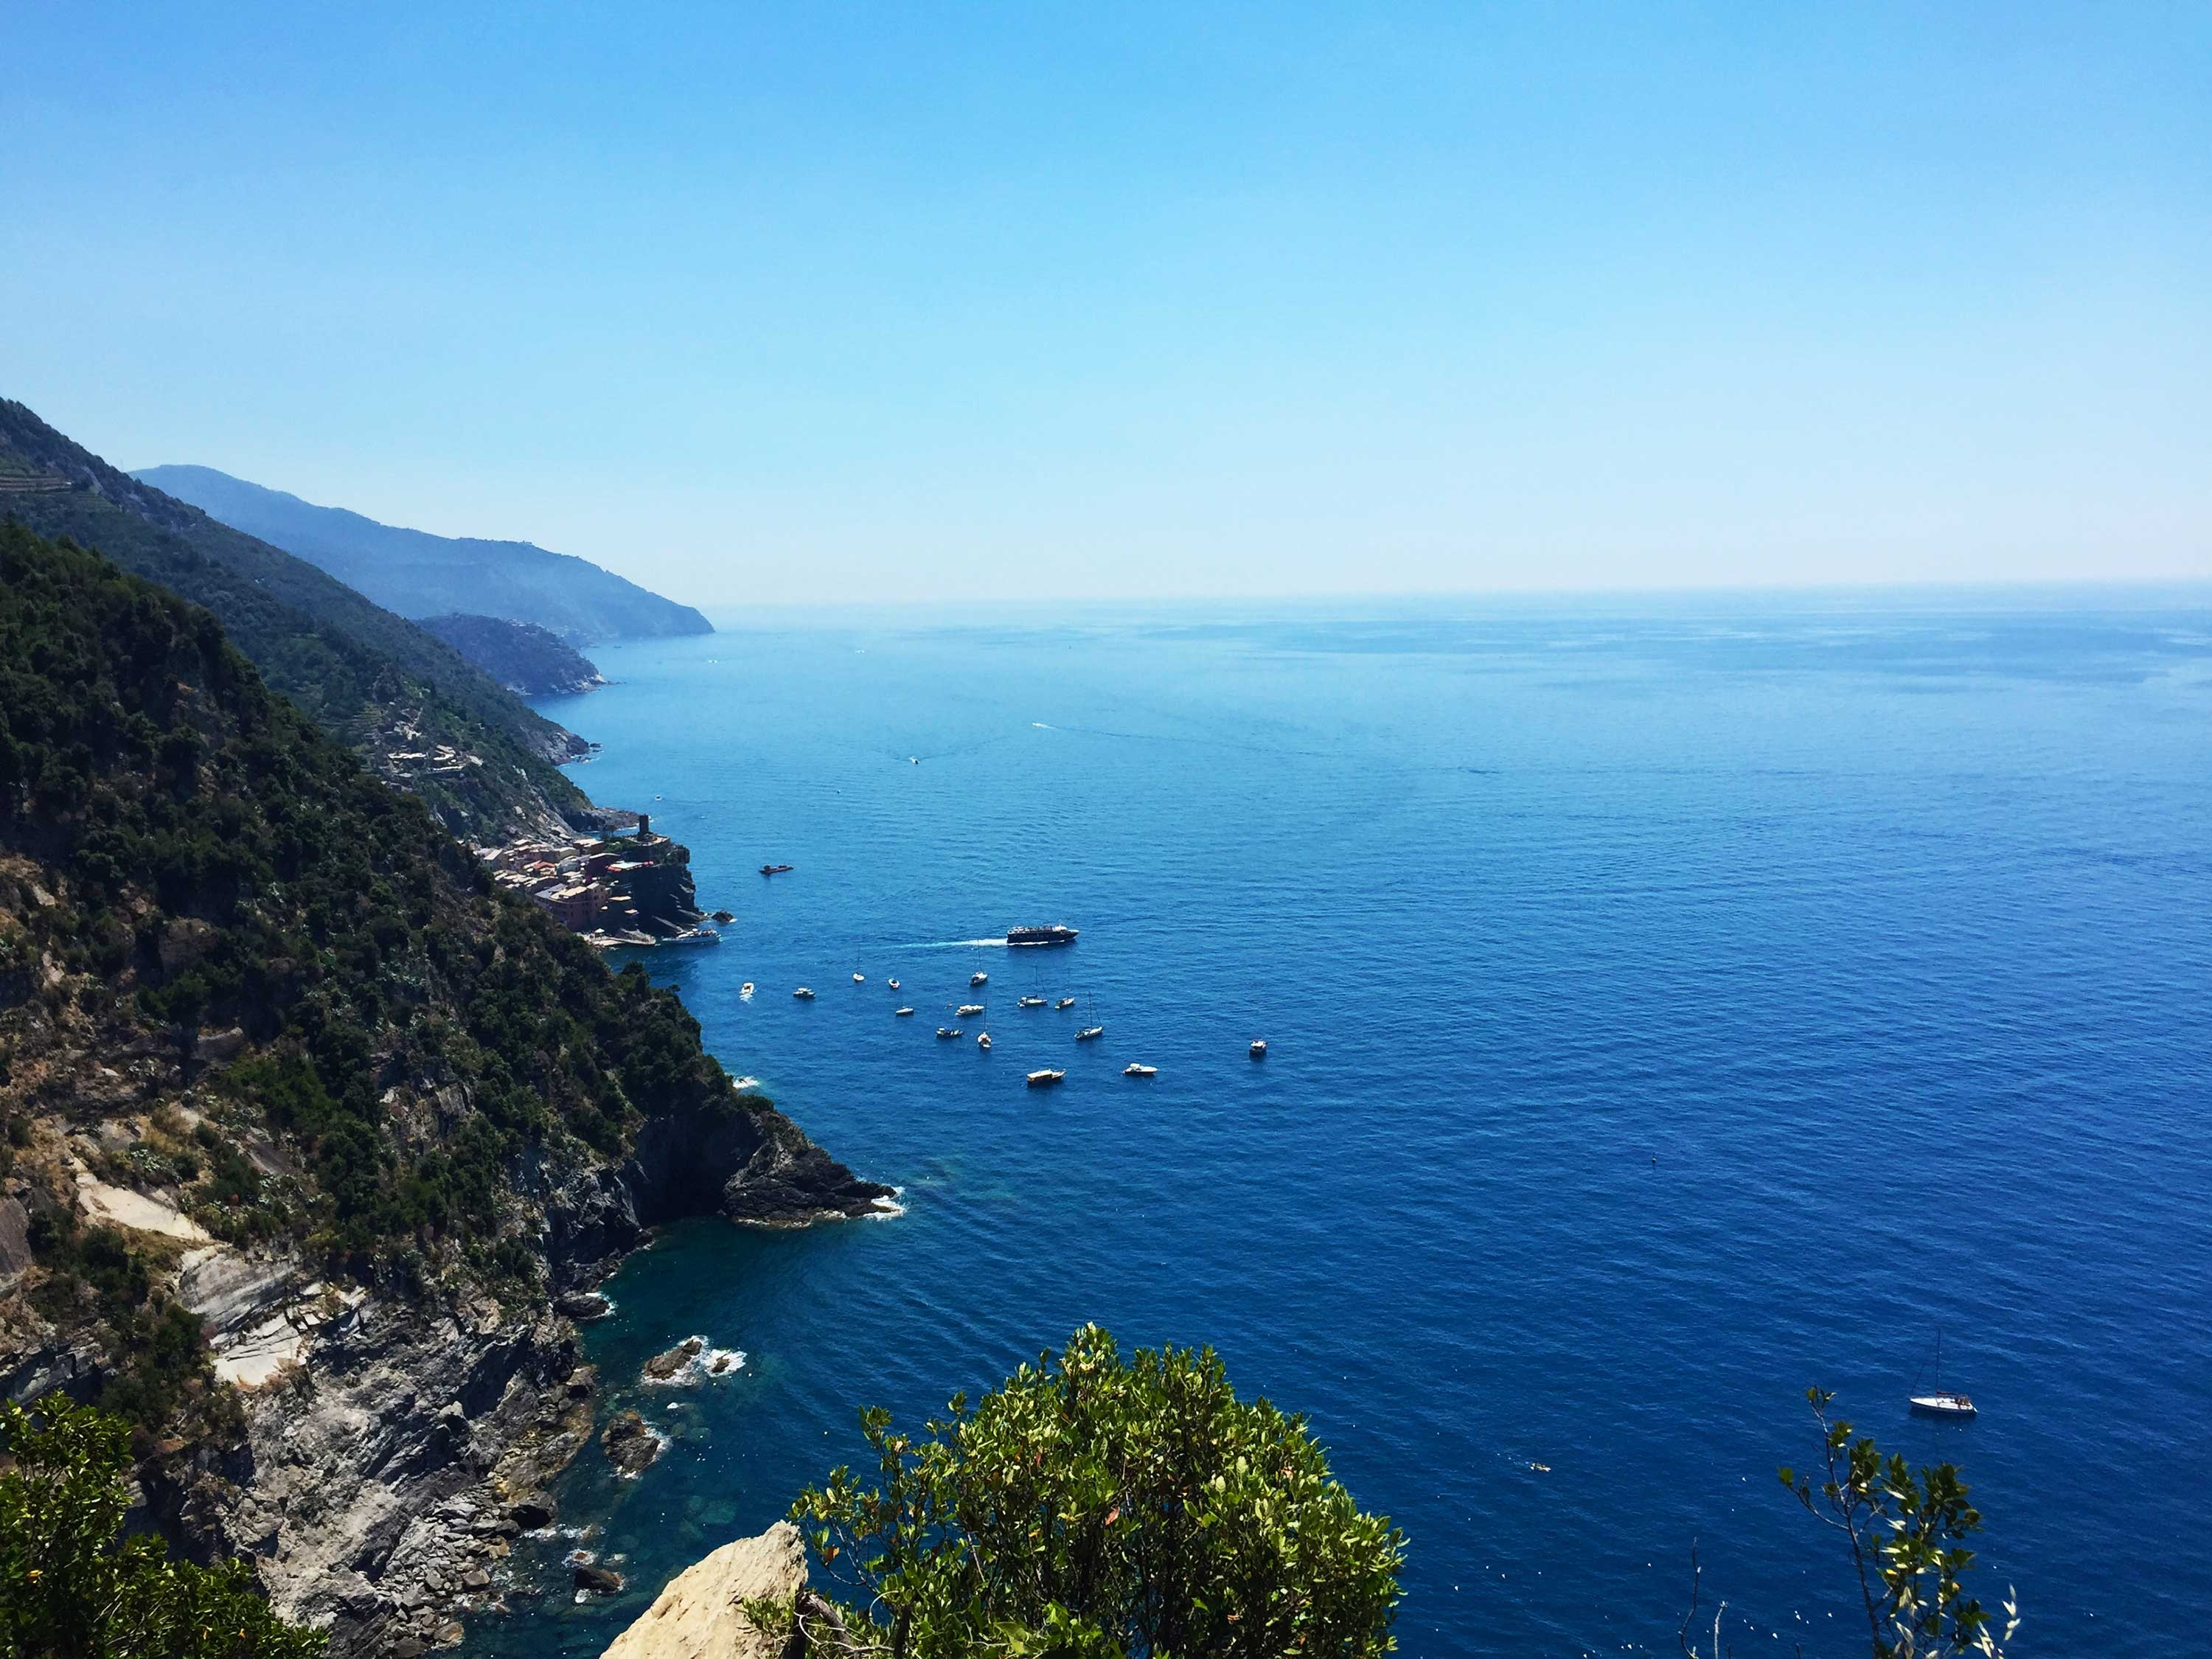 The vista of the Italian coastline – the mountains meet the sea and boats sail along the horizon